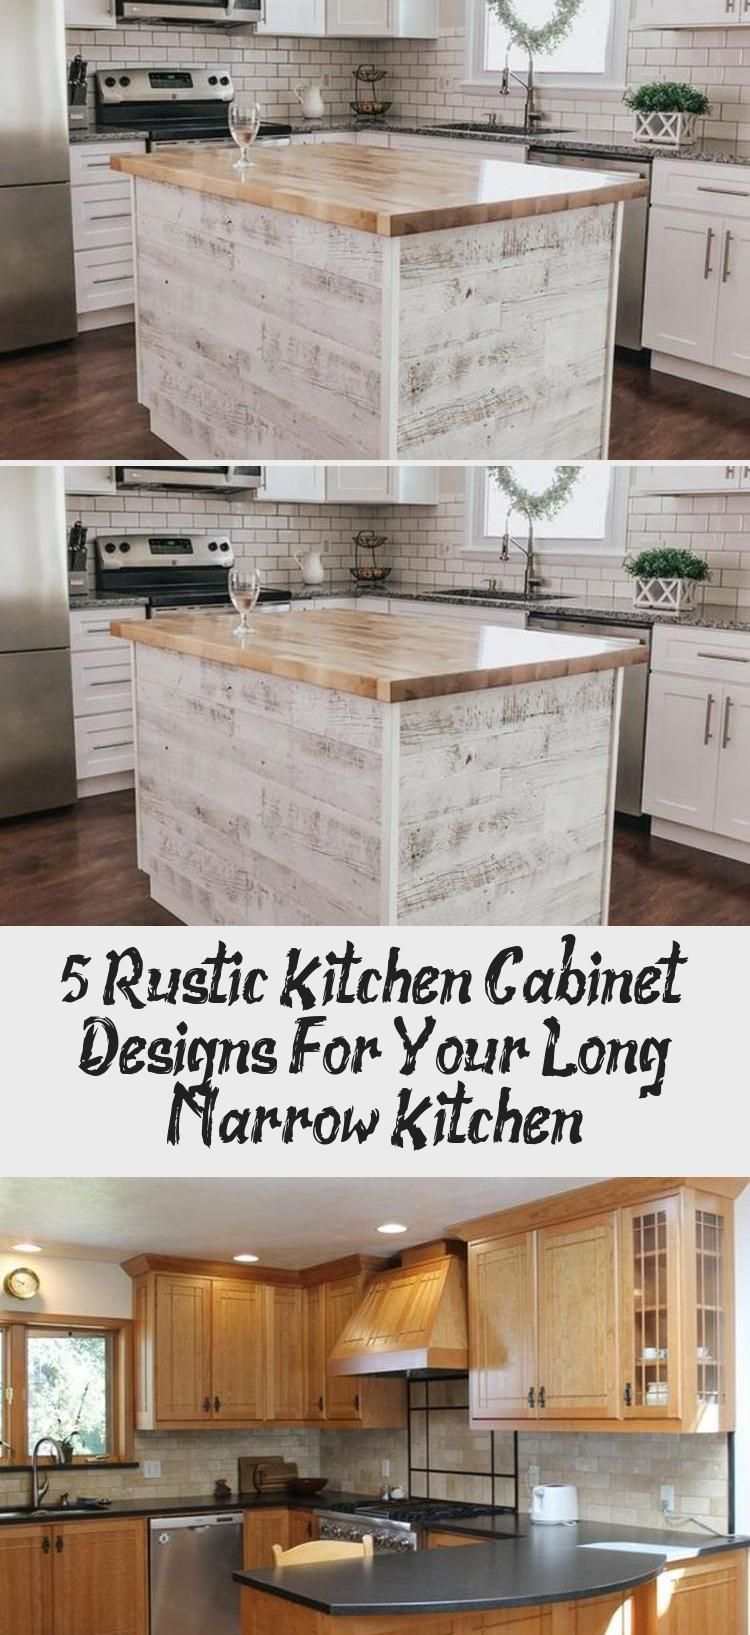 5 Rustic Kitchen Cabinet Designs For Your Long Narrow Kitchen #longnarrowkitchen 5 Rustic Kitchen Cabinet Designs for your Long Narrow Kitchen # #DesignsforyourLongNarrowKitchen, #Interior Design #kitchendesignMarble #kitchendesignSmall #Minimalistkitchendesign #kitchendesignBrown #kitchendesignBoard #longnarrowkitchen